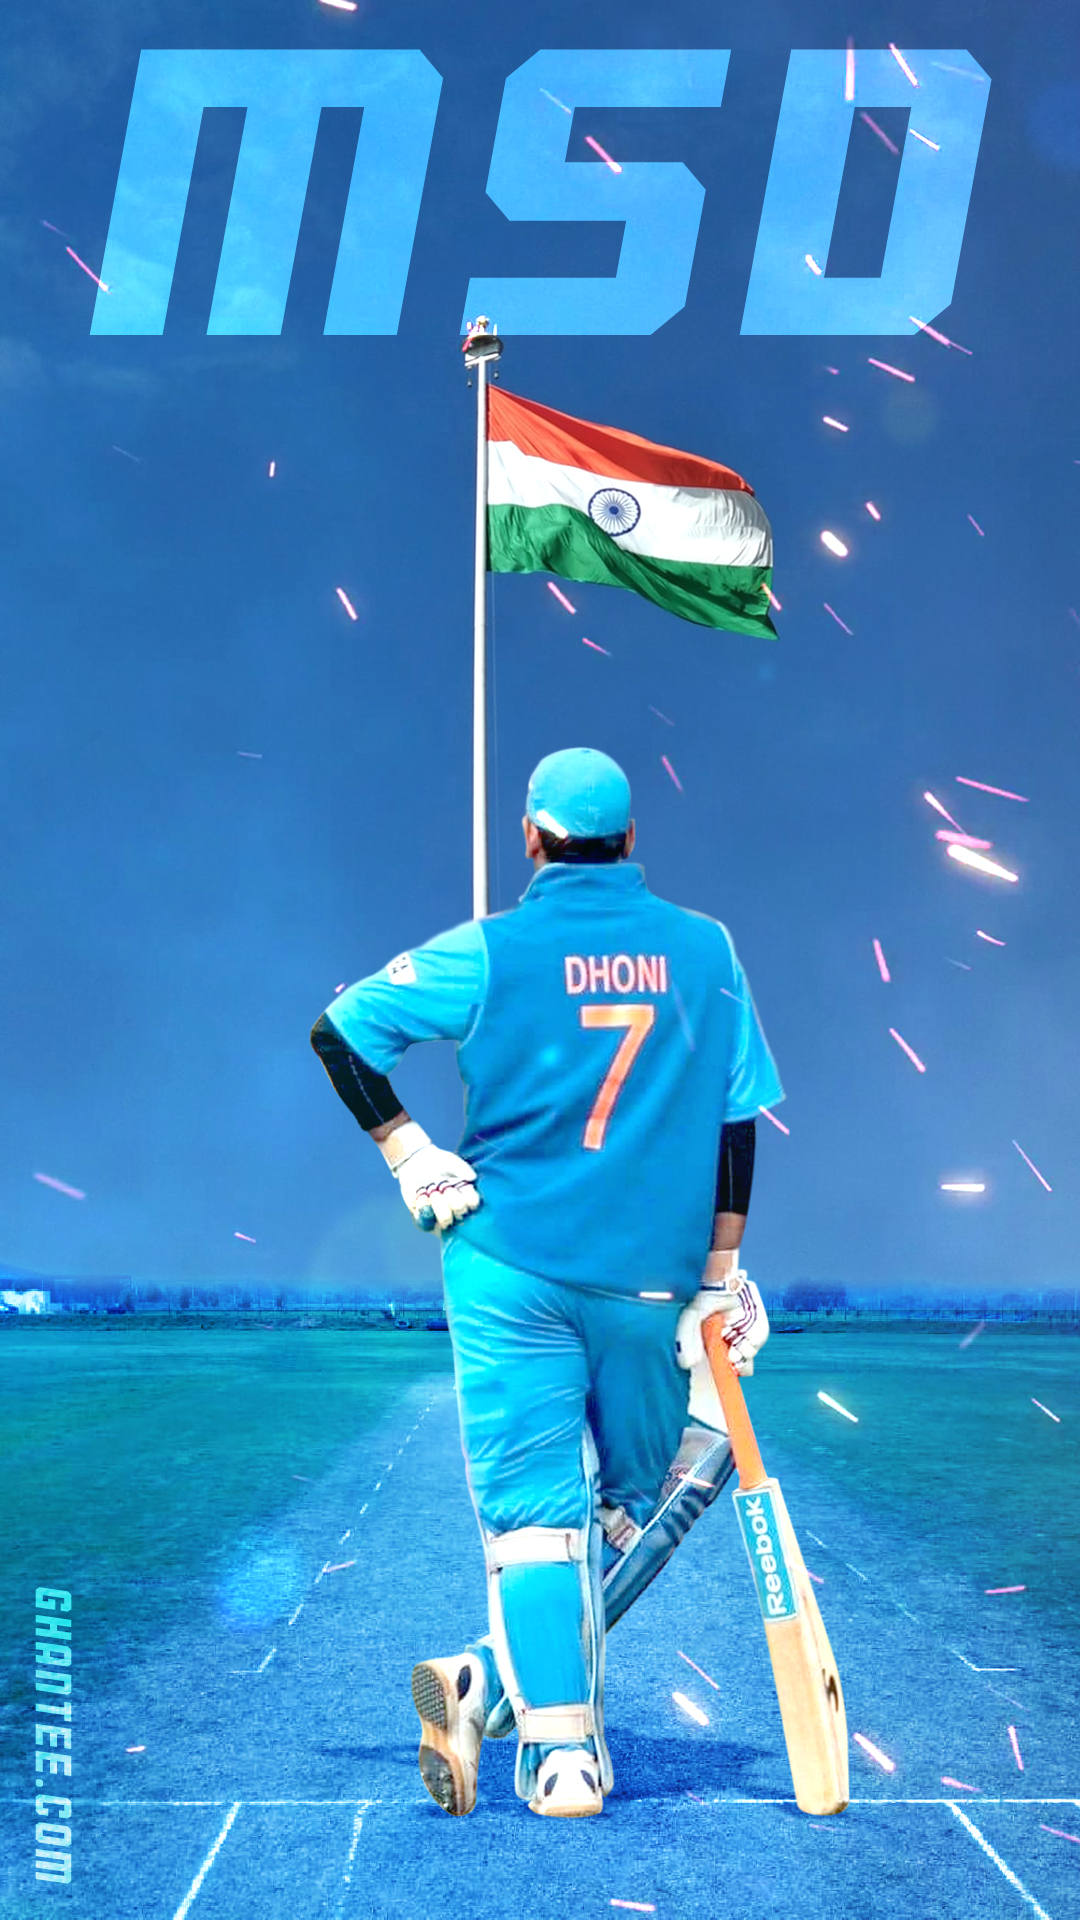 Dhoni number 7 wallpaper for mobile devices